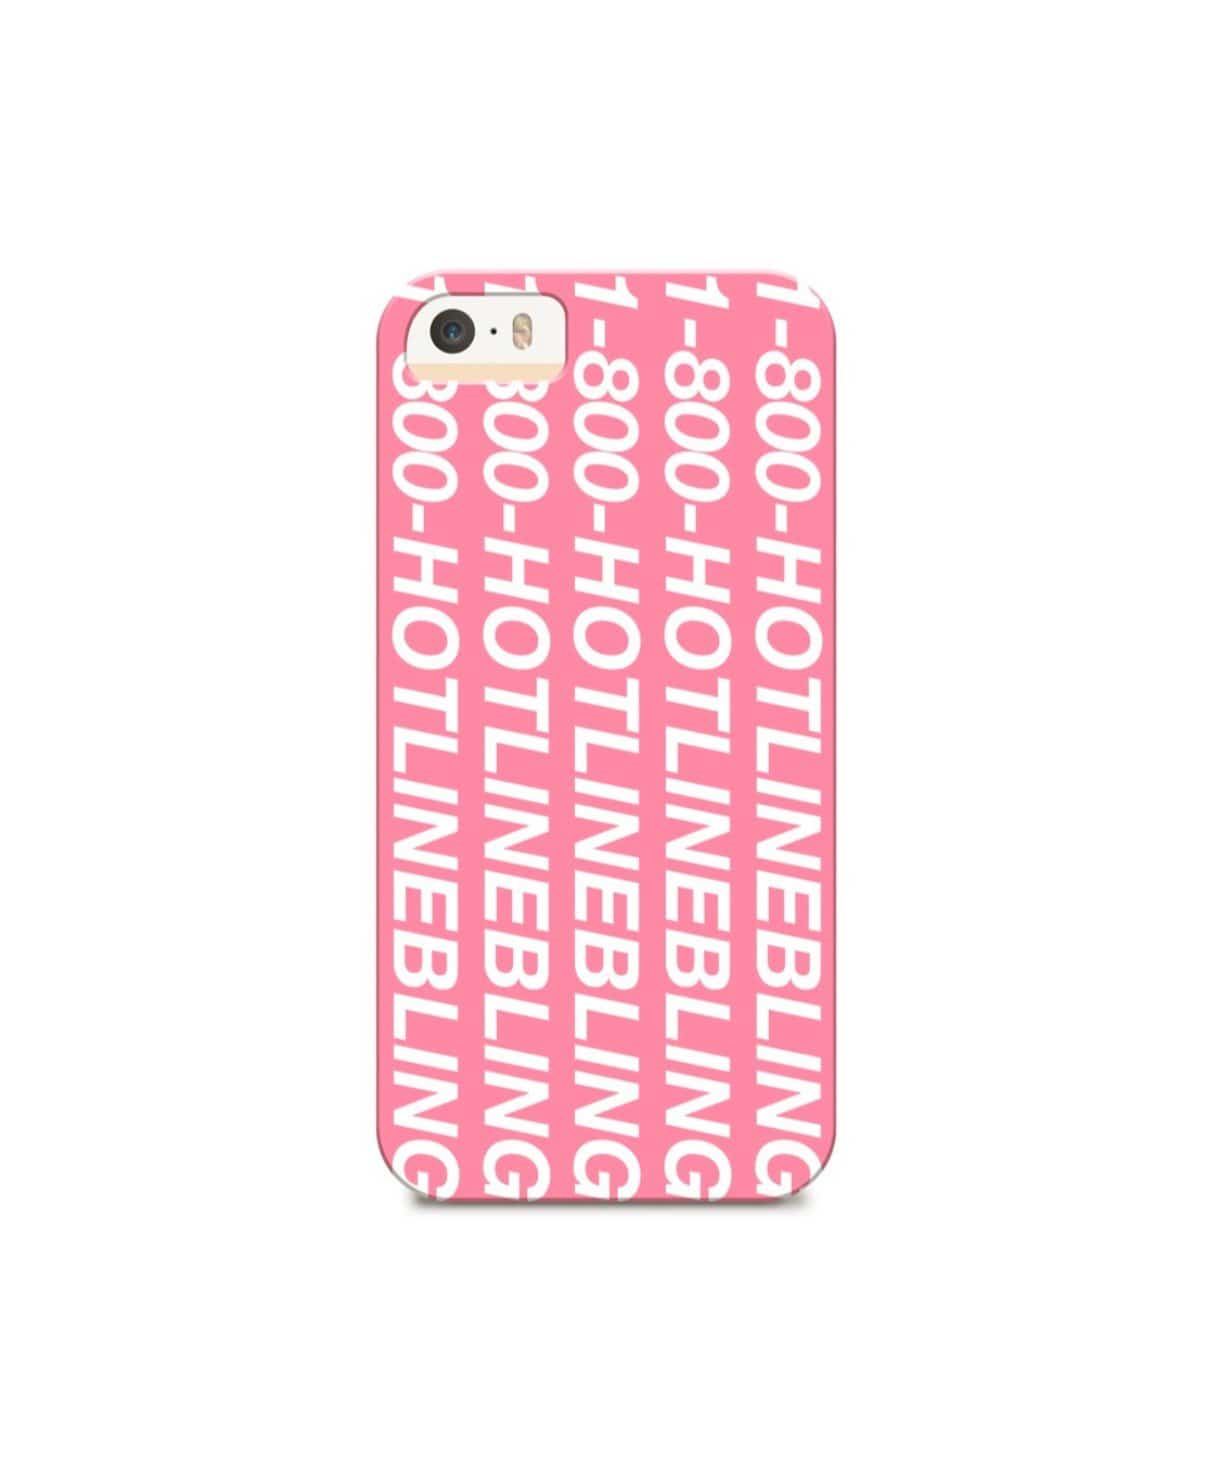 Hotline Bling Pink IPhone Cover (Personalition Available) - Uptownie